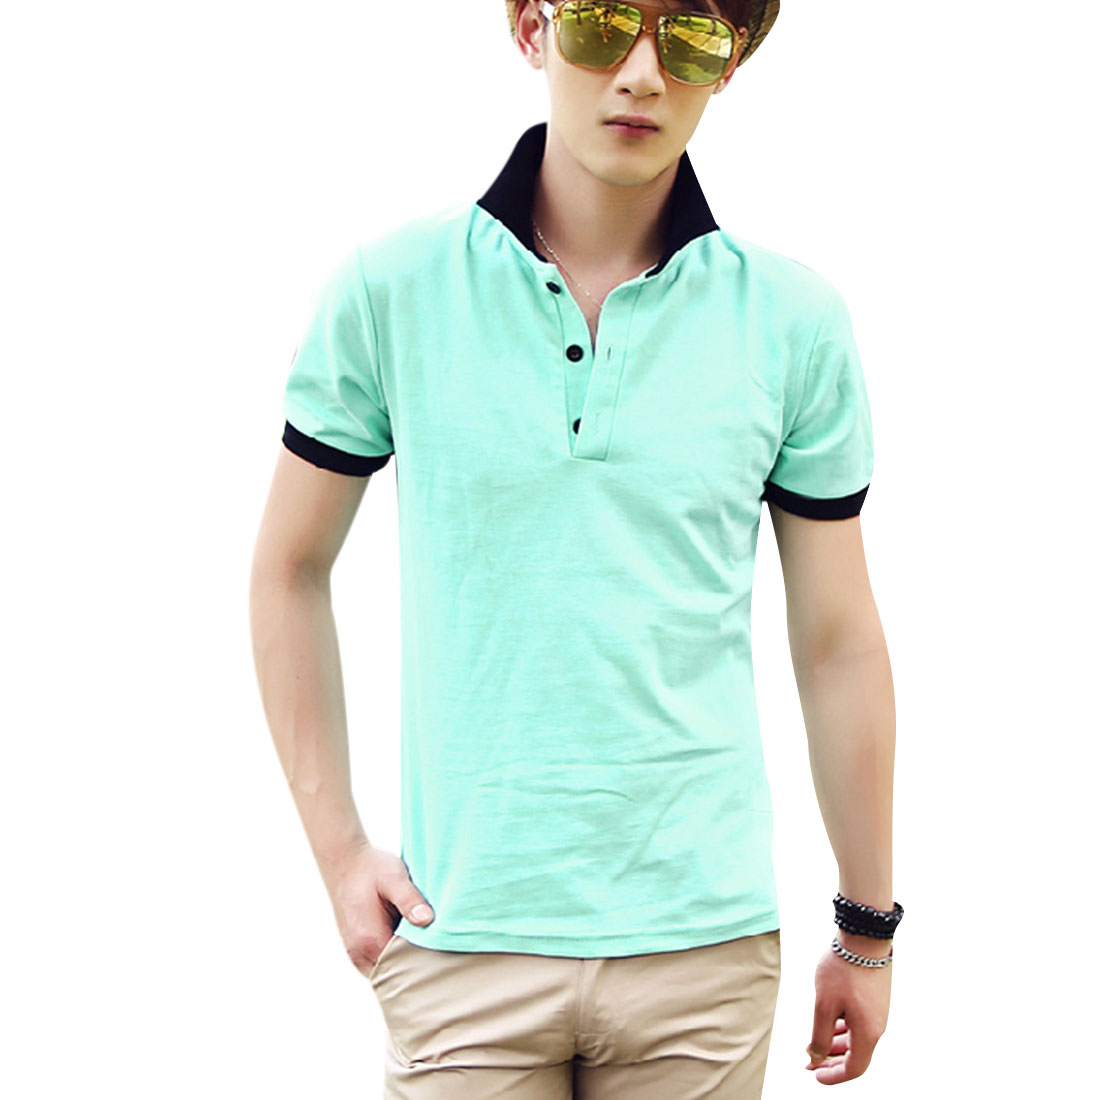 Men Convertible Collar Short Sleeve Stretchy Polo Shirt Mint M